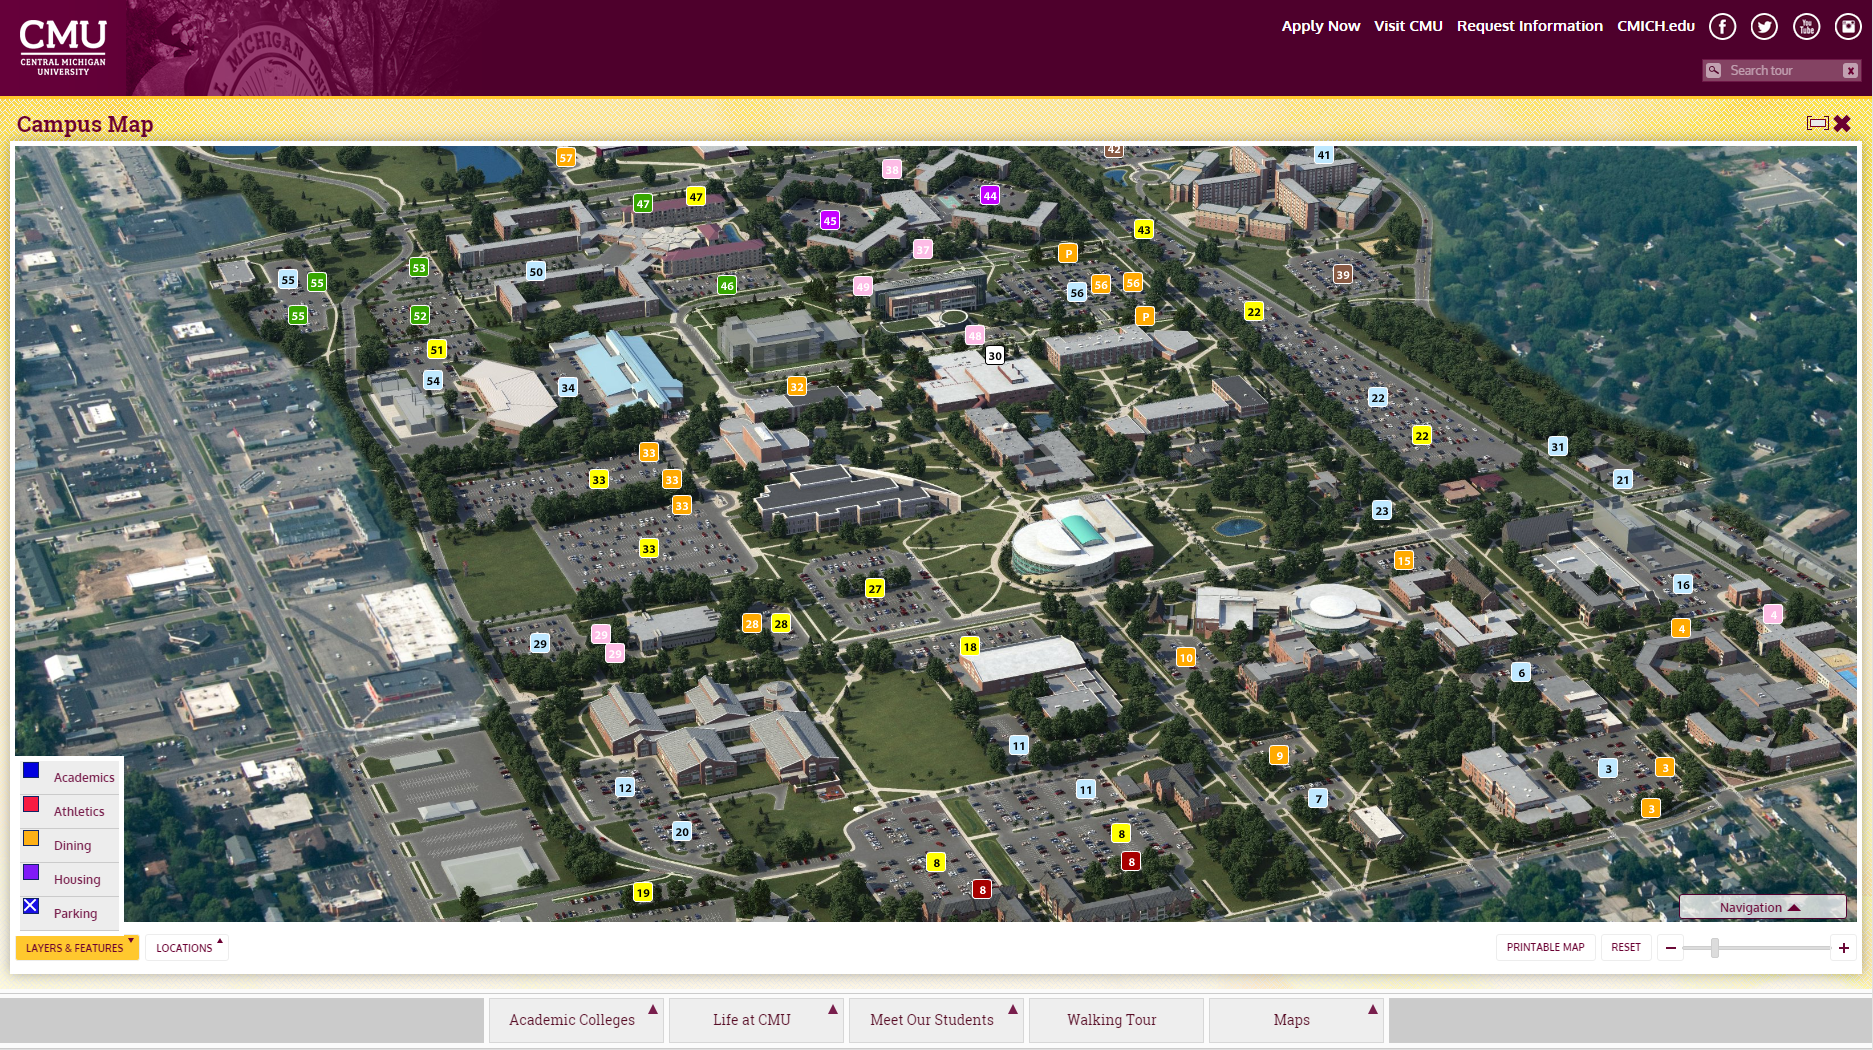 Graphical Layers on Interactive Campus Maps